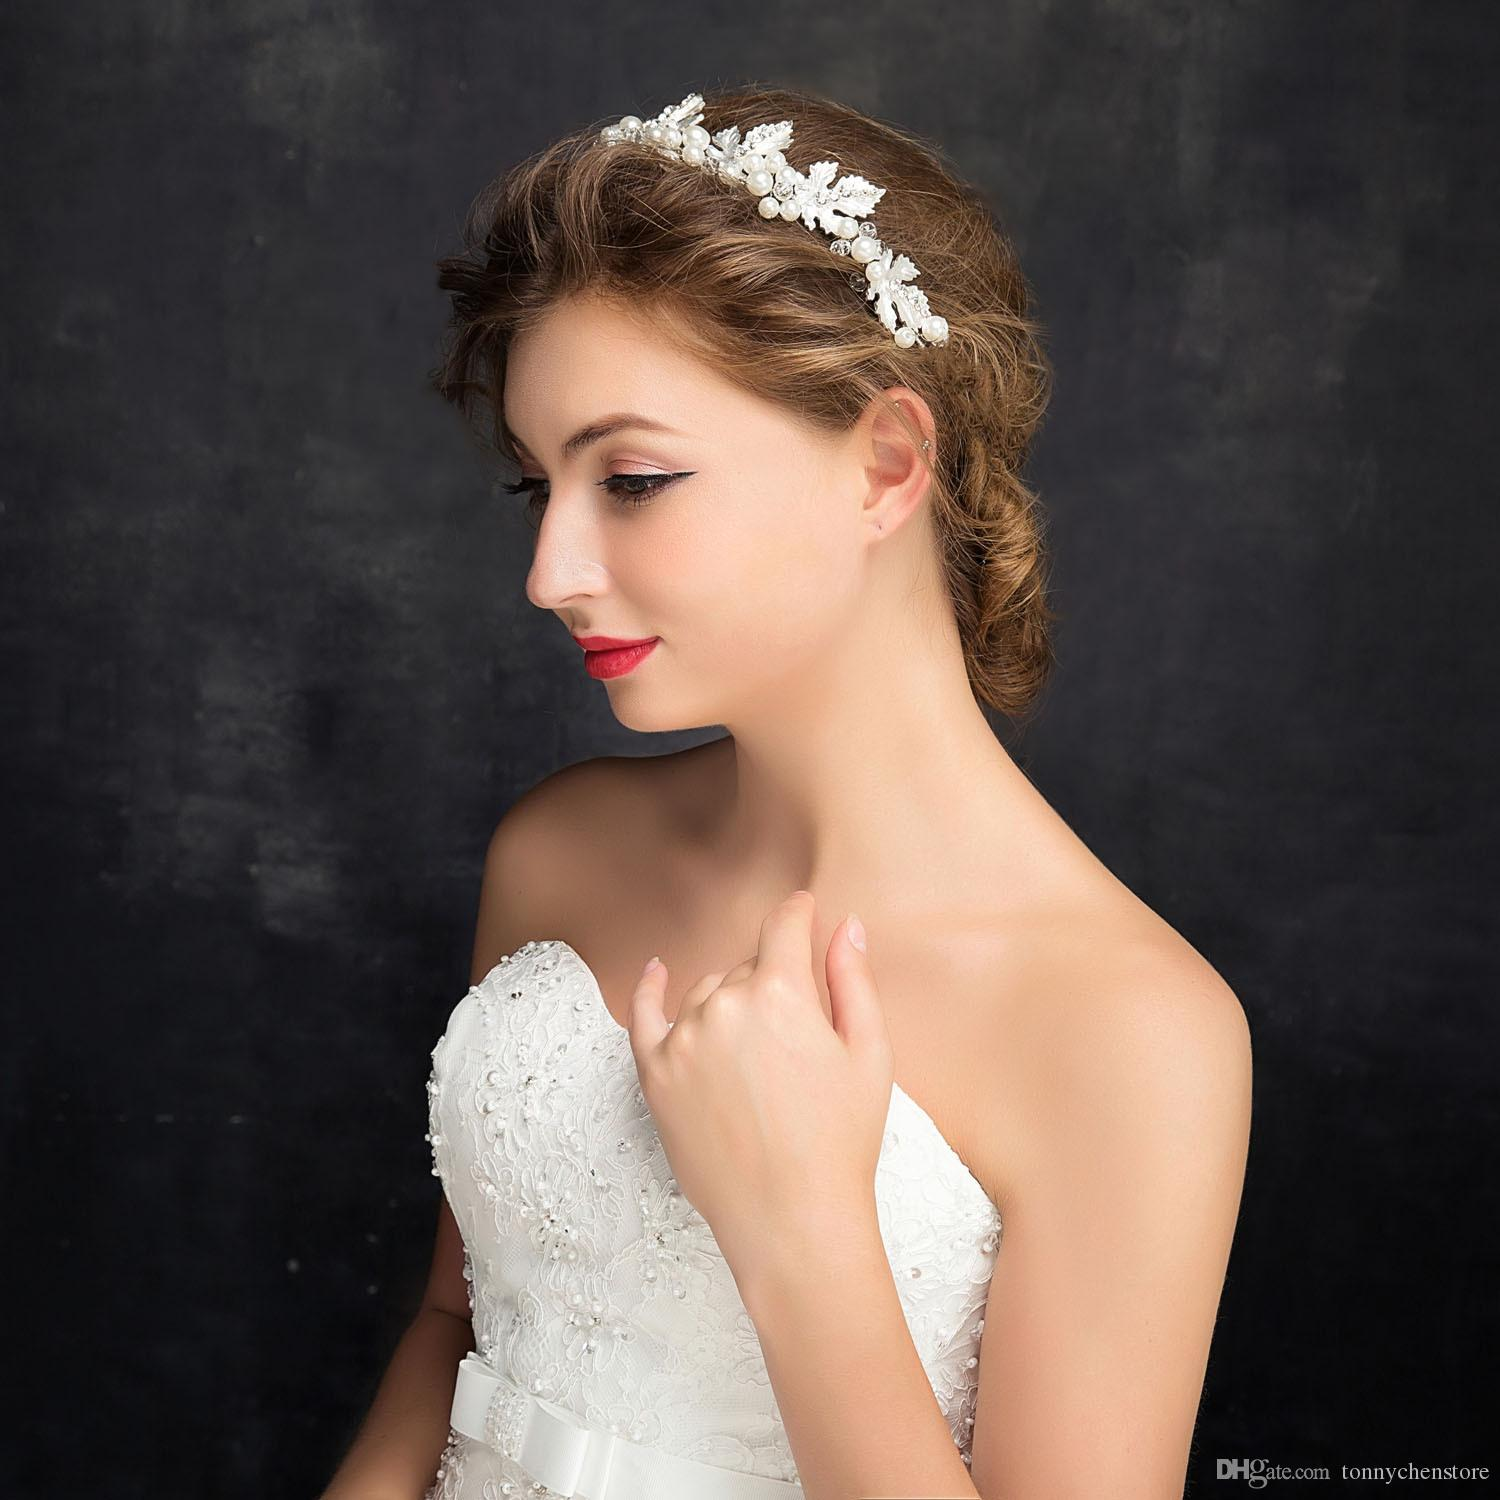 Wedding Hairstyles With Tiara And Veil: 2019 Charming For Women Prarl Wedding Hair Accessories